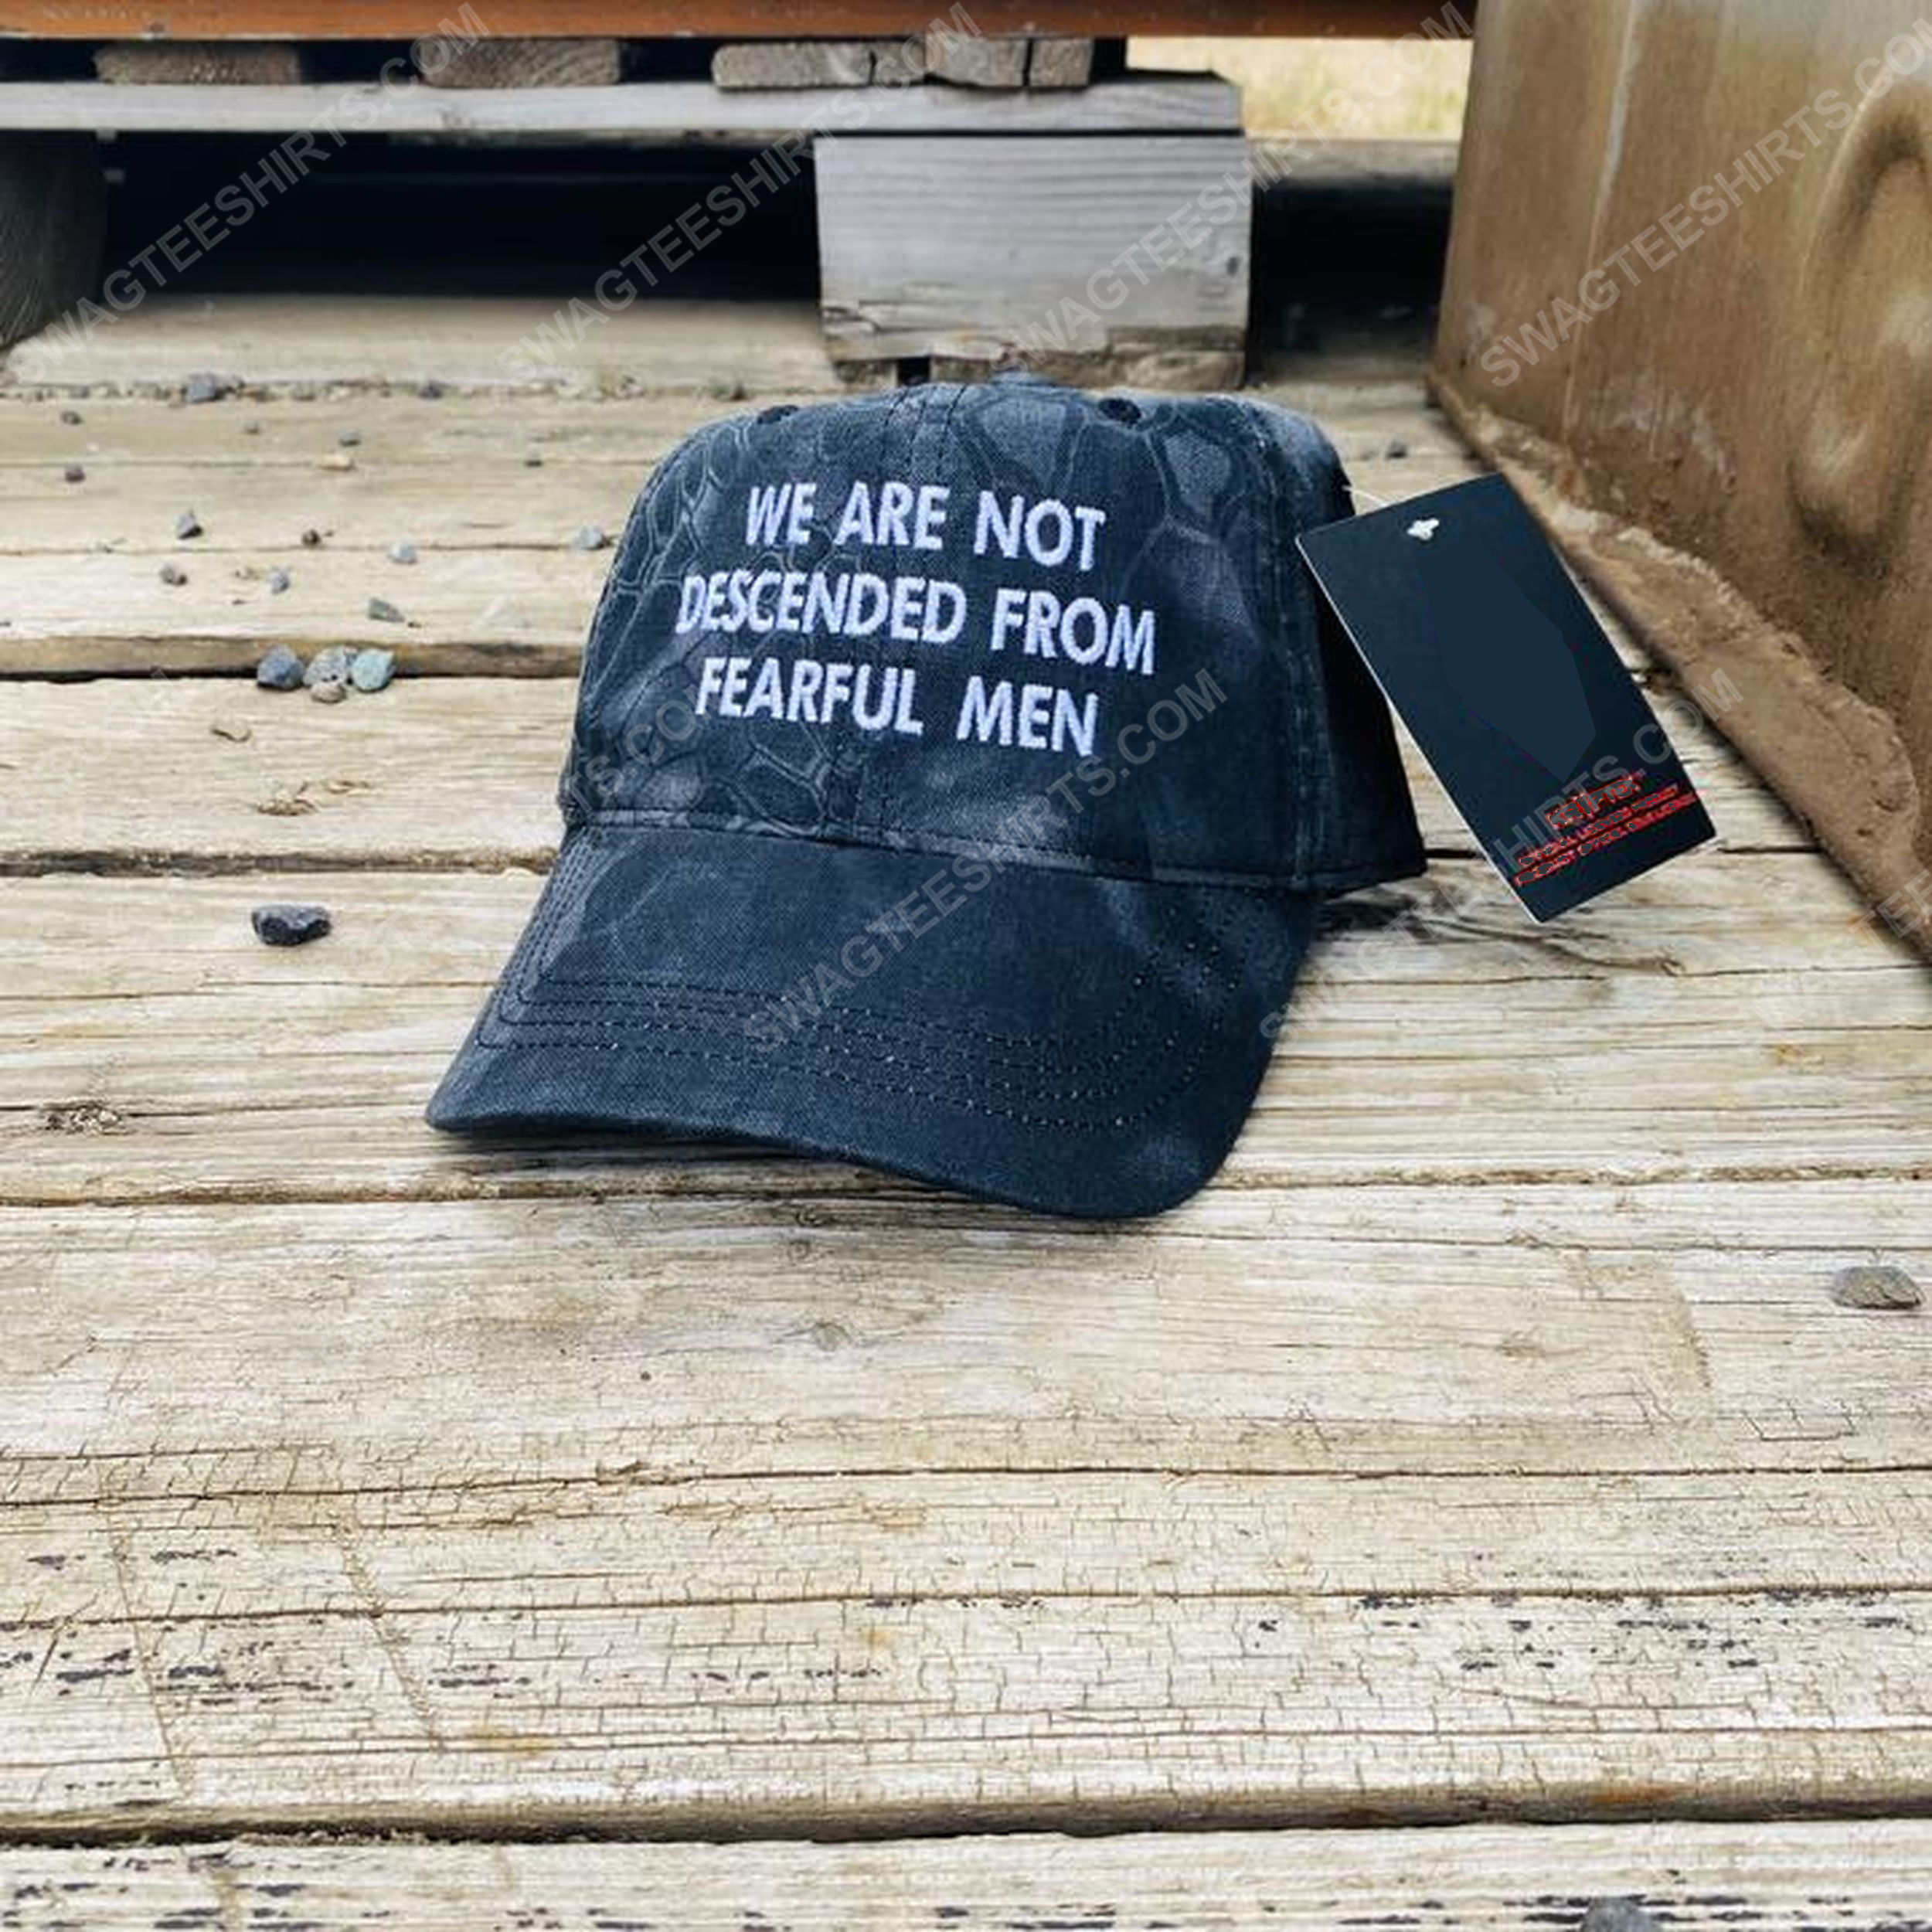 We are not descended from fearful men full print classic hat 1 - Copy